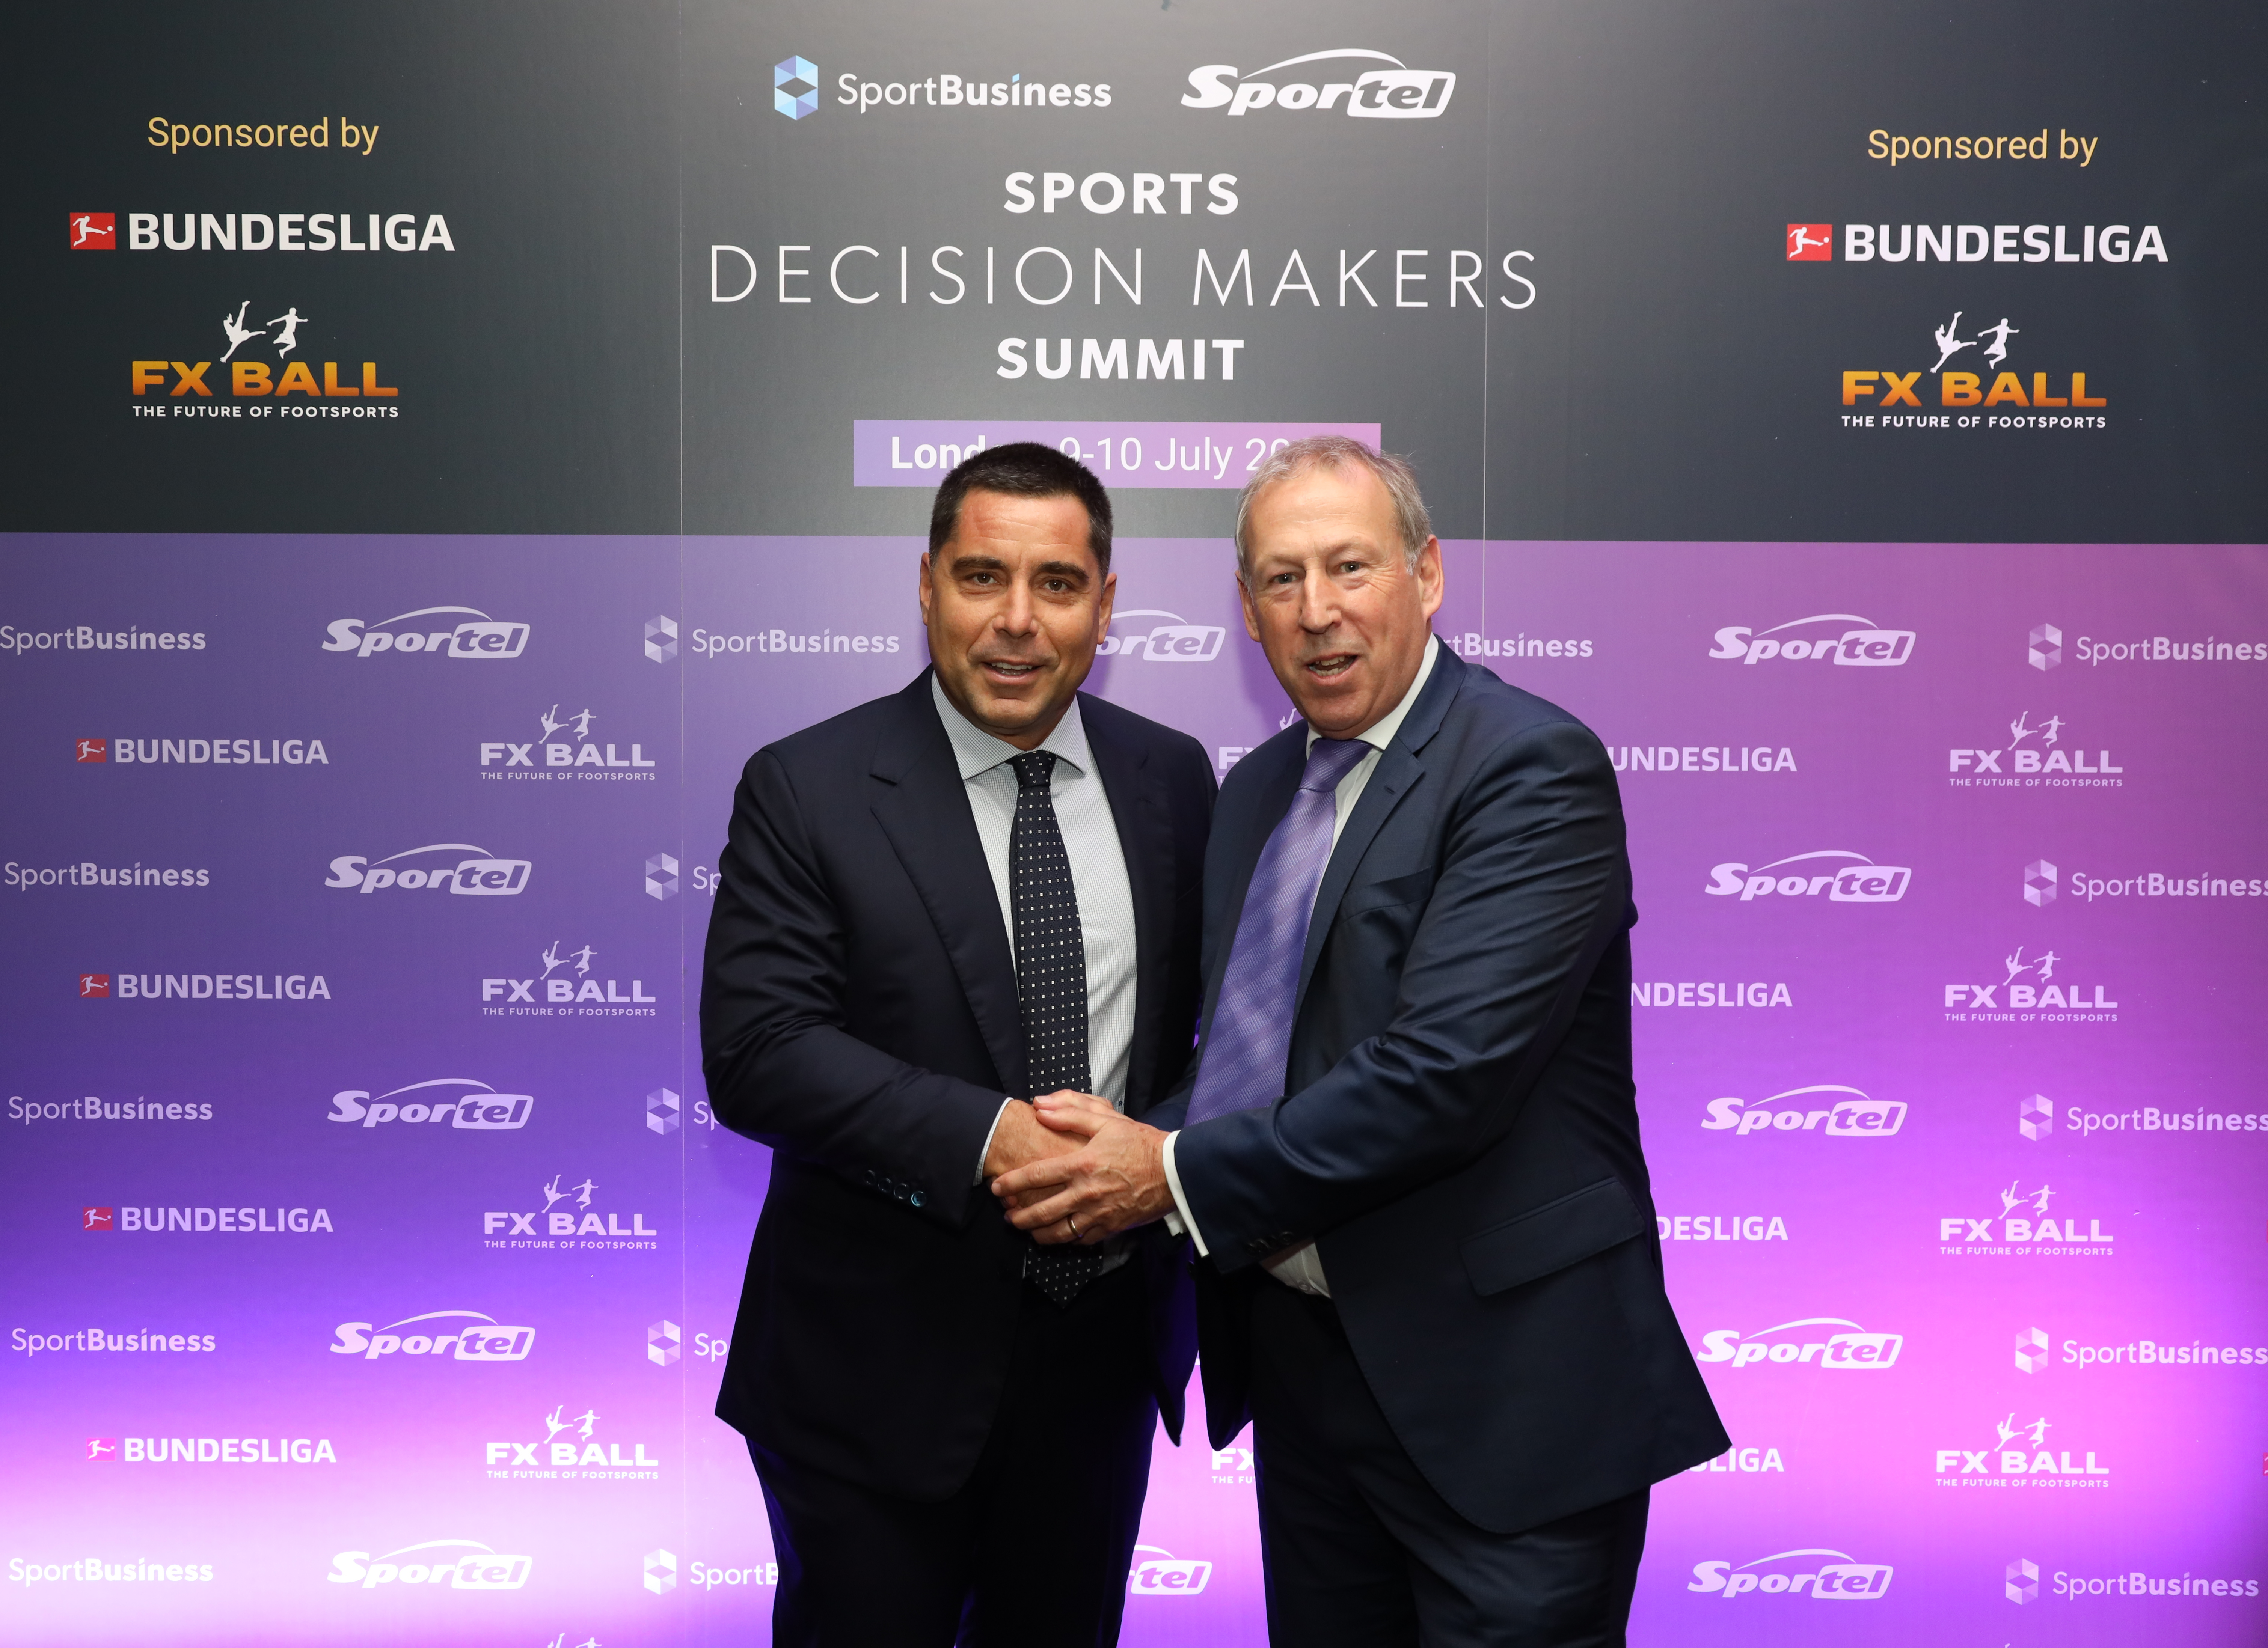 Riccardo Silva and Kevin Roberts, Group Editorial Director of SportBusiness, at the Sports Decision Makers Summit – London 2019